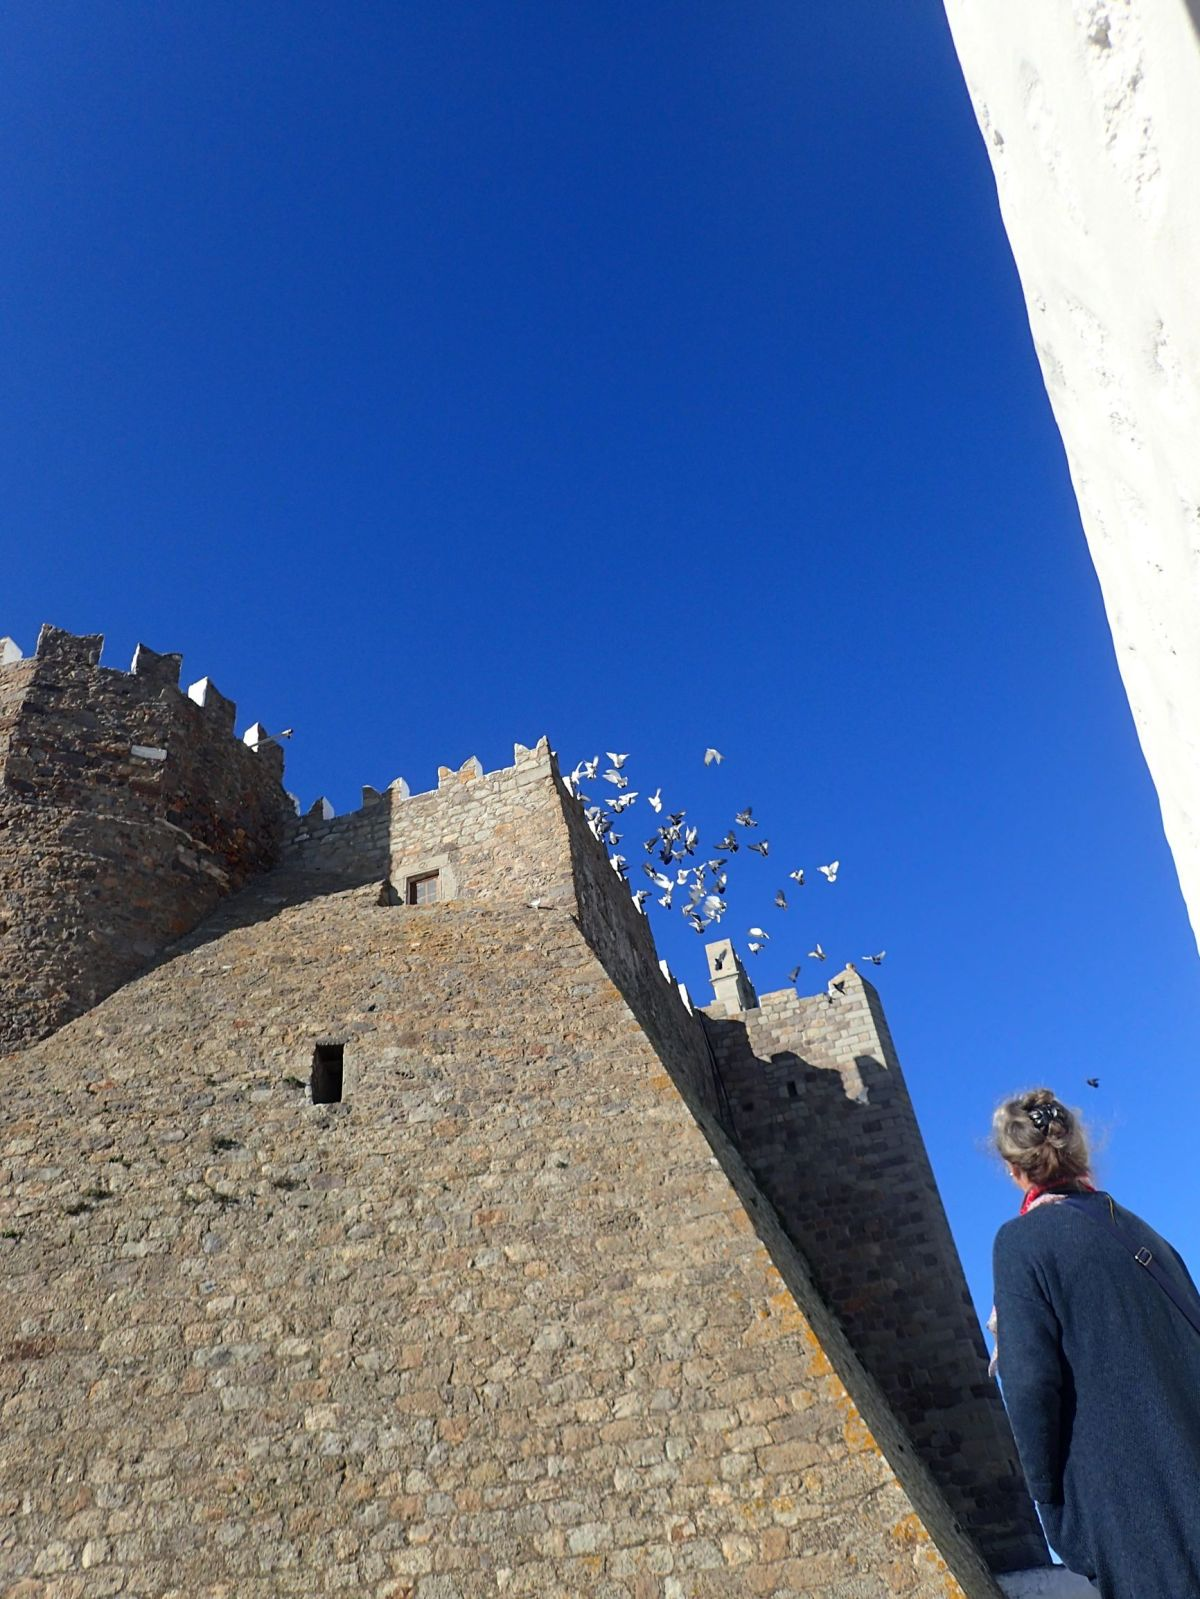 A Winter Weekend in Patmos (Part 1)